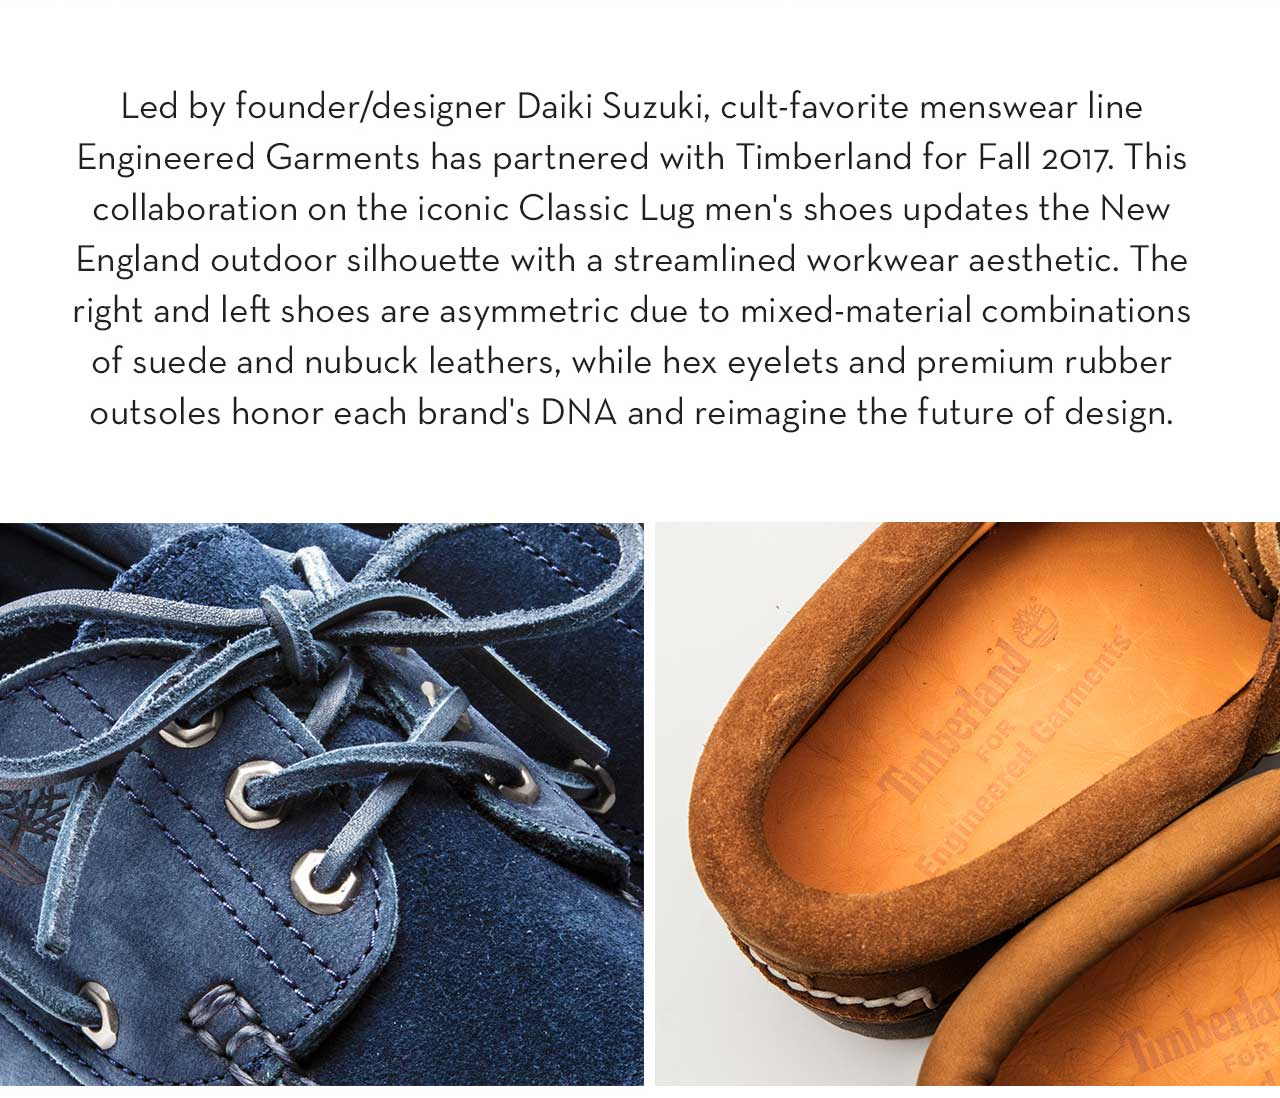 Led by founder/designer Daiki Suzuki, cult-favorite menswear line Engineered Garments has partnered with Timberland for Fall 2017. This collaboration on the iconic Classic Lug men's shoes updates the New England outdoor silhouette with a streamlined workwear aesthetic. The right and left shoes are asymmetric due to mixed-material combinations of suede and nubuck leathers, while hex eyelets and premium rubber outsoles honor each brand's DNA and reimagine the future of design.